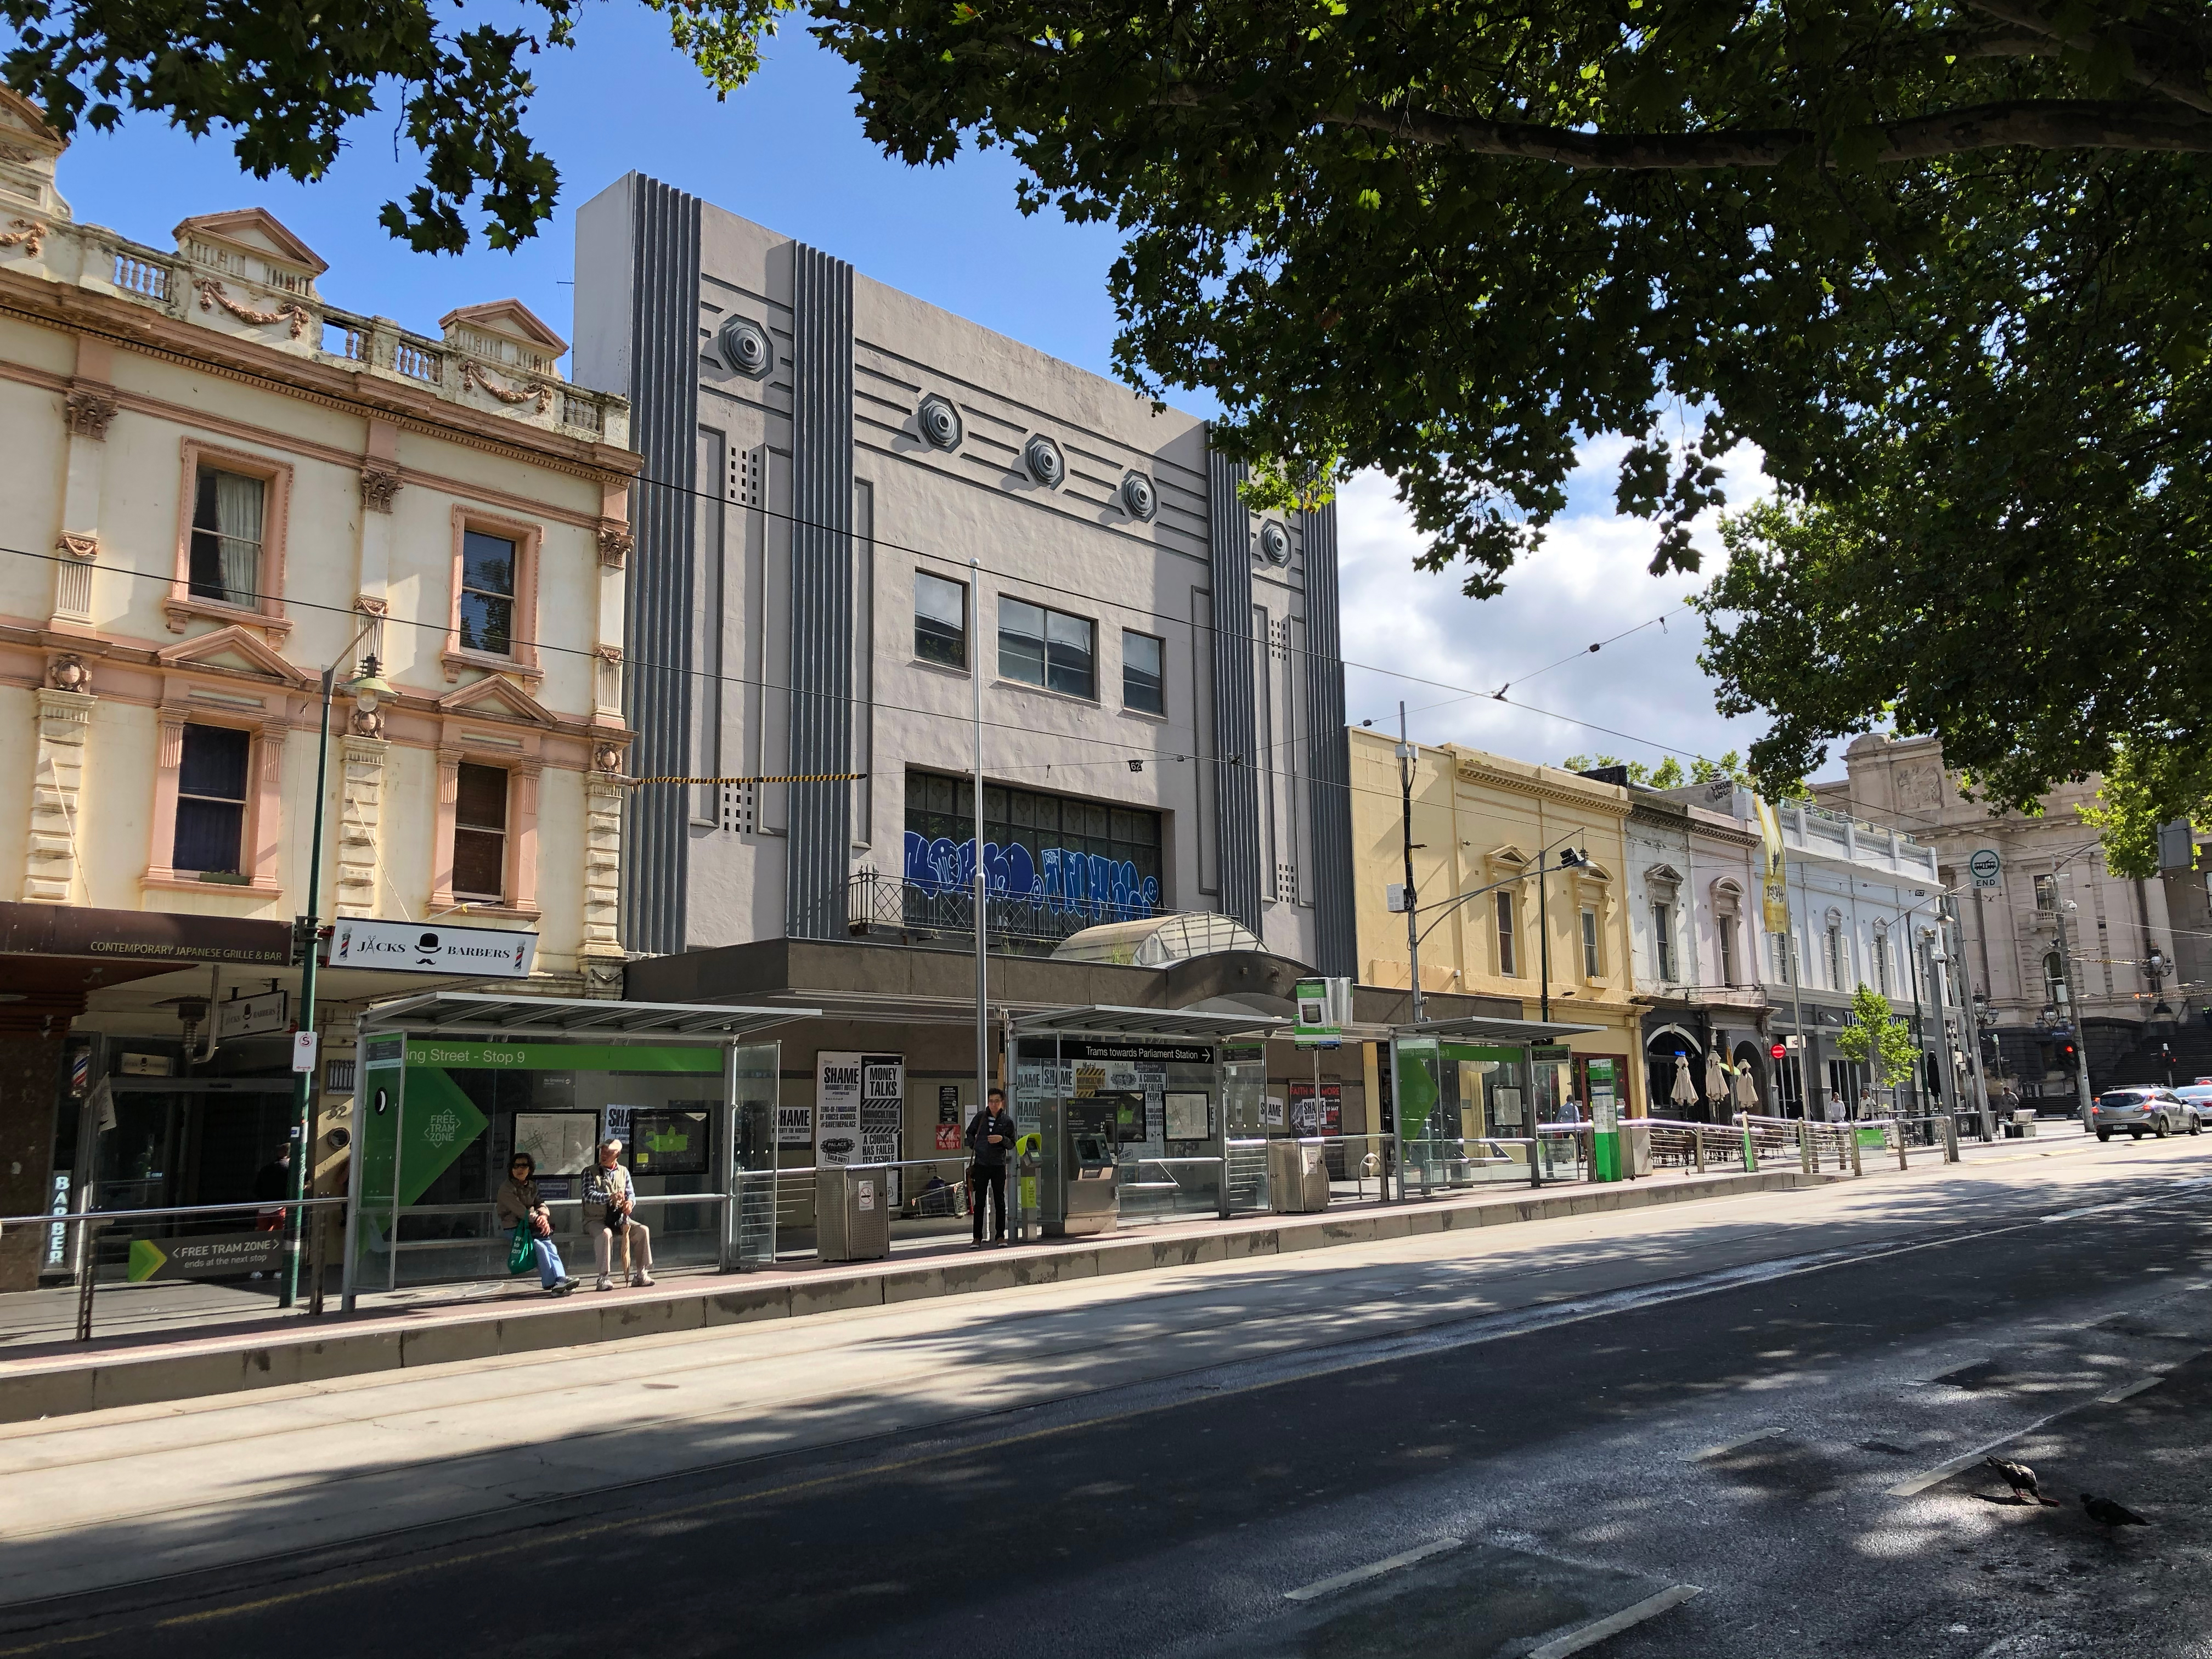 The Doors Have Been Closed For Six Years: What Is Going On With Melbourne's Palace Theatre?